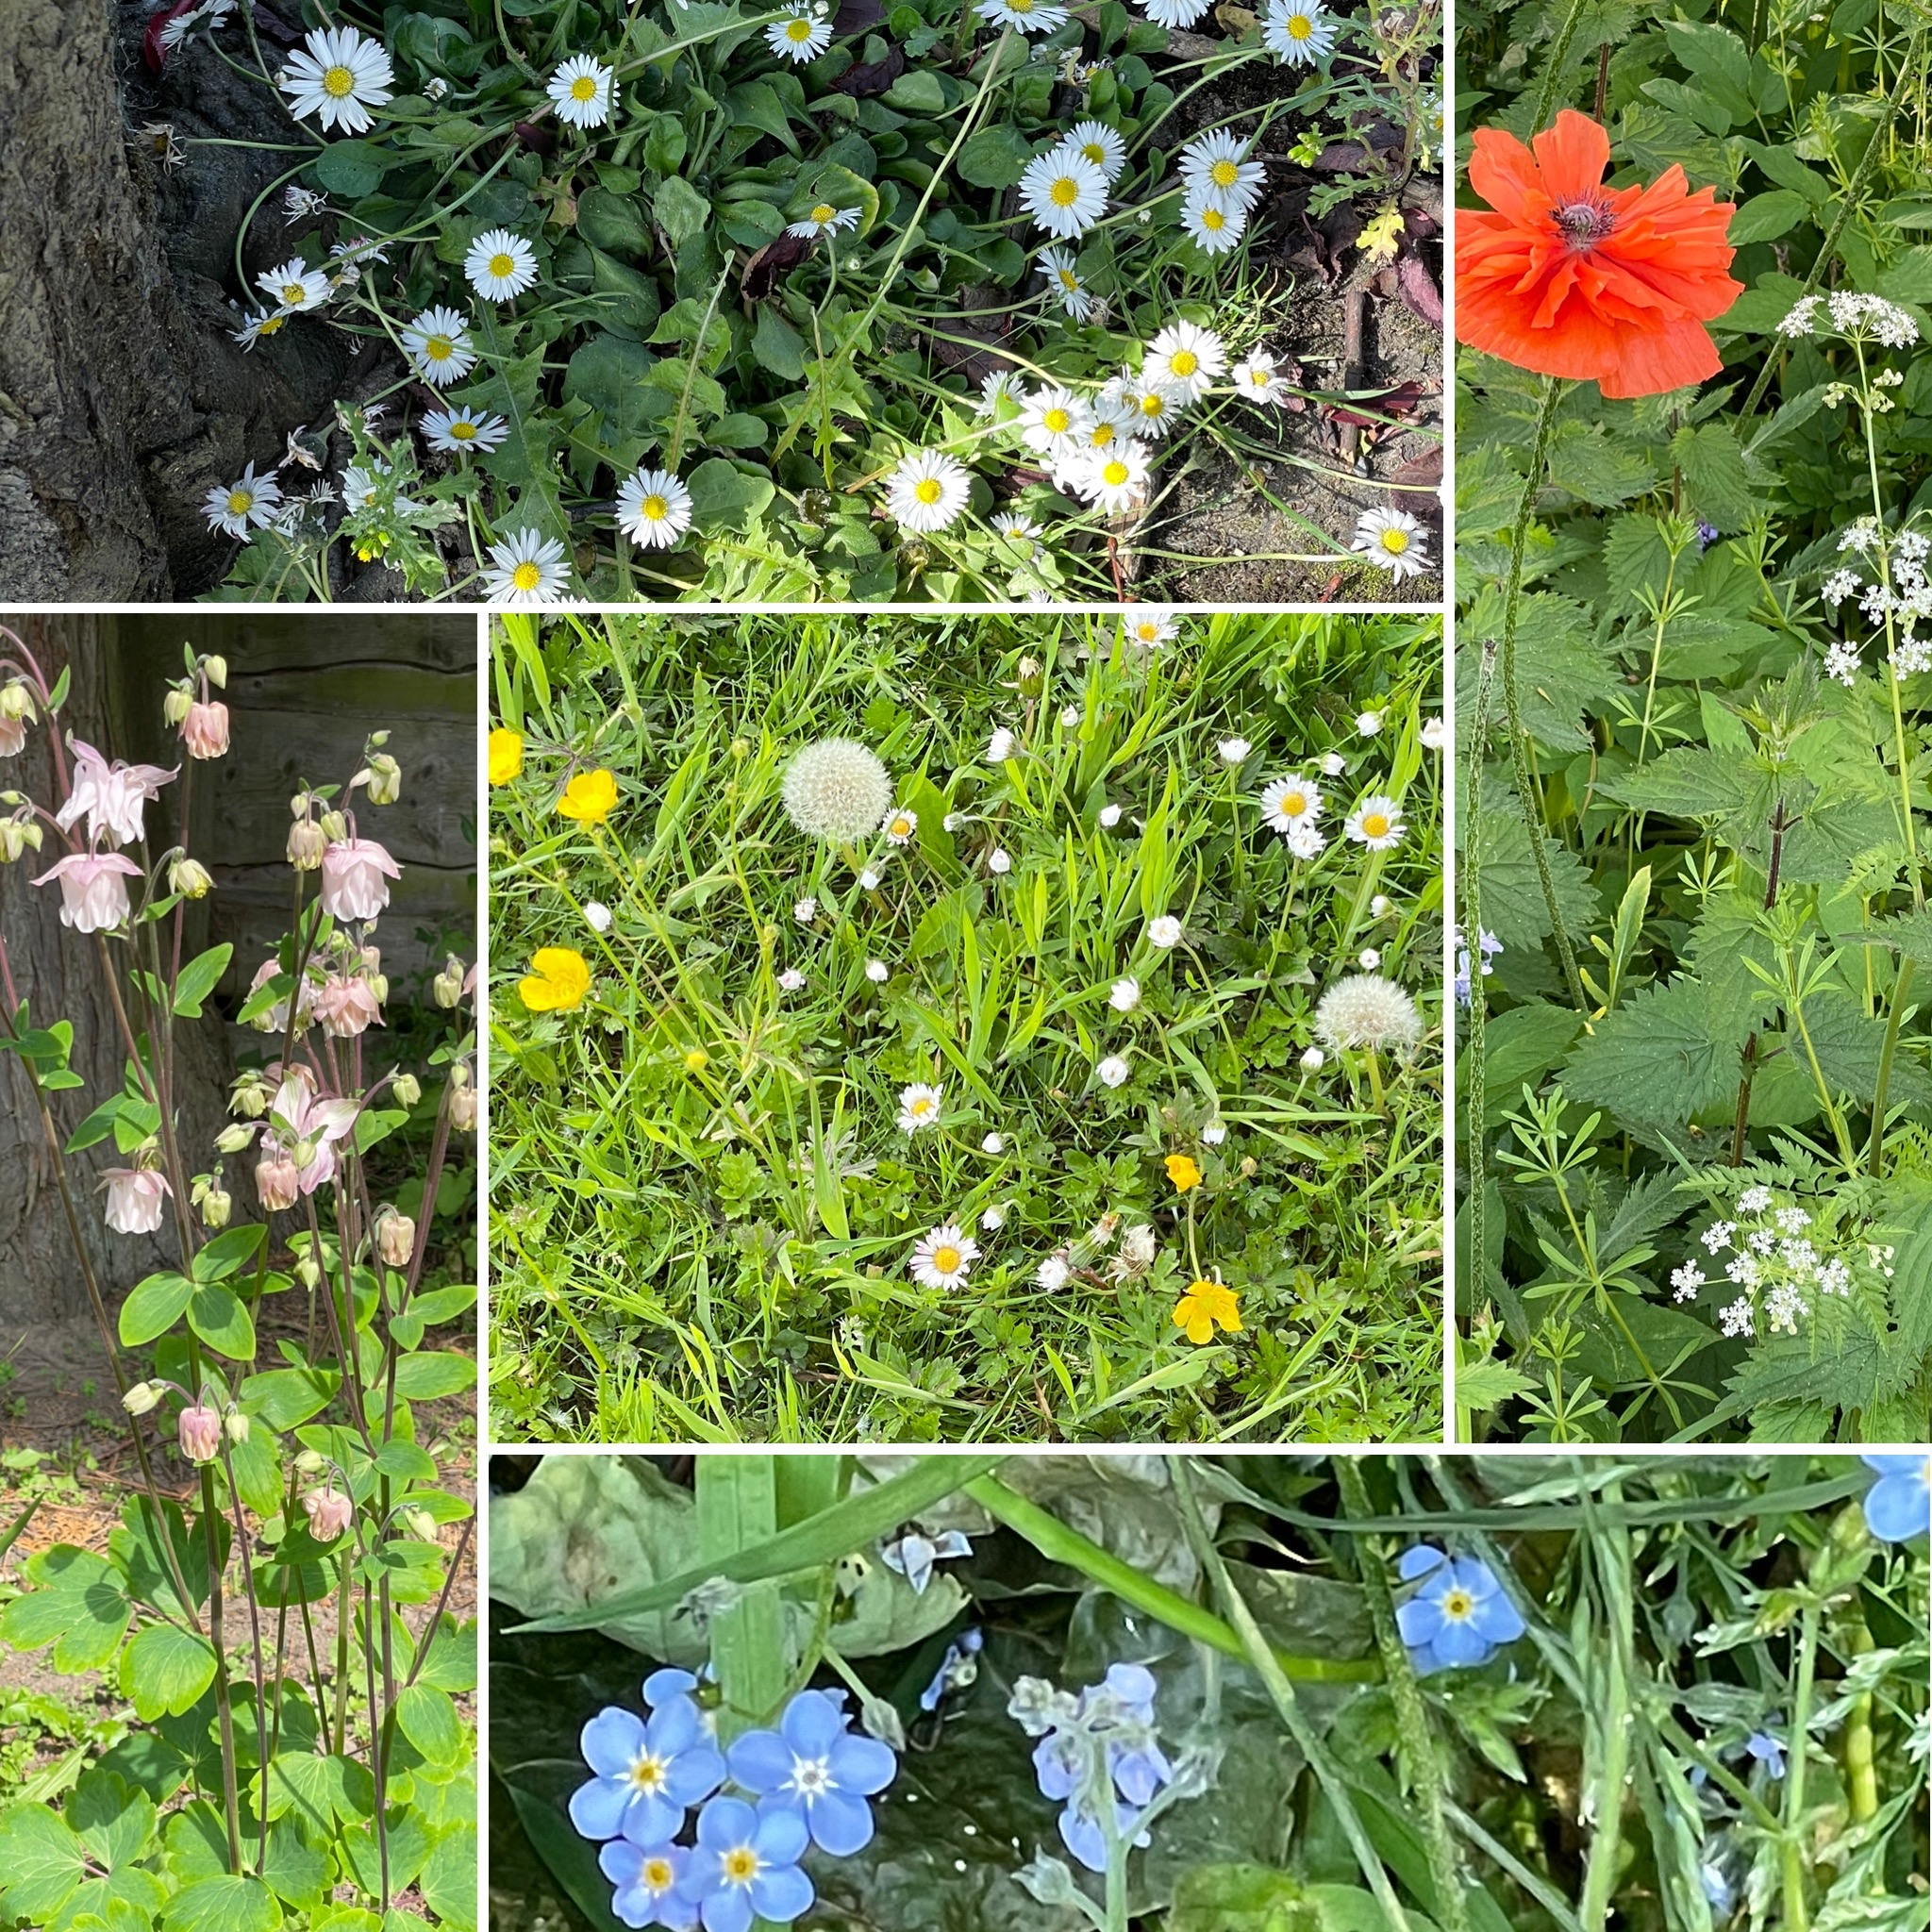 Wildflowers and communication